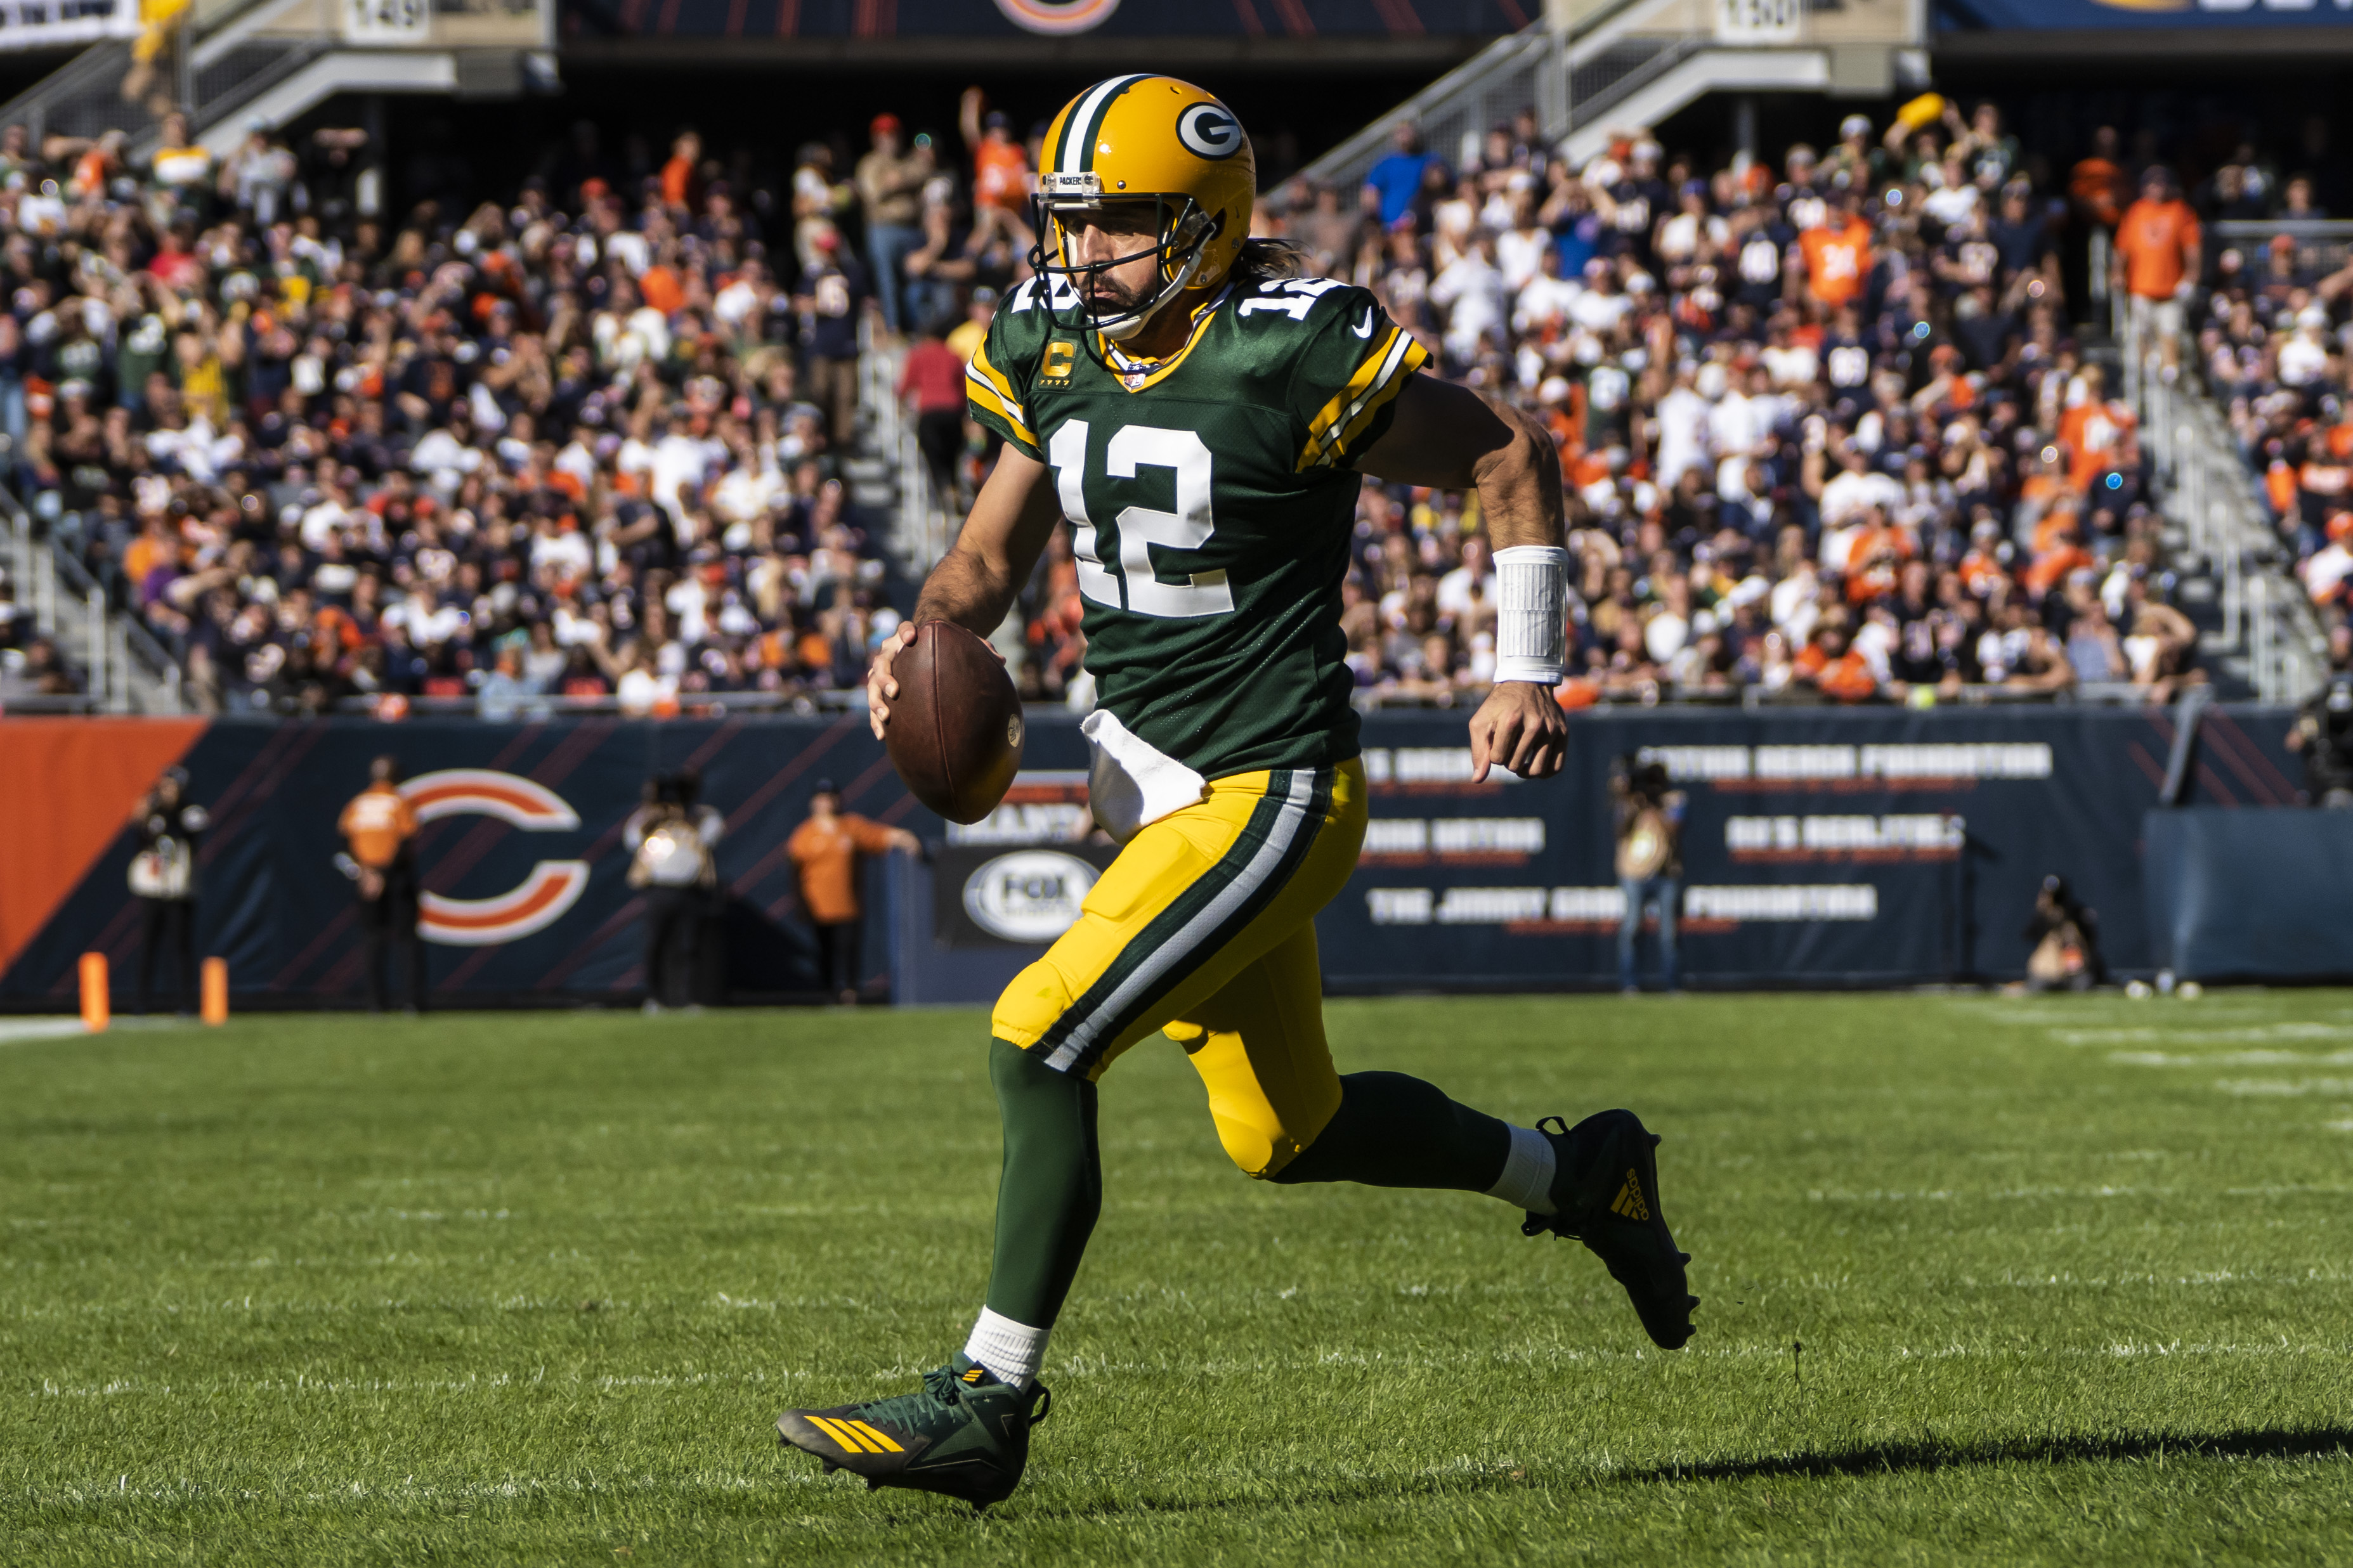 Packers quarterback Aaron Rodgers rushes for a touchdown during the fourth quarter of Sunday.